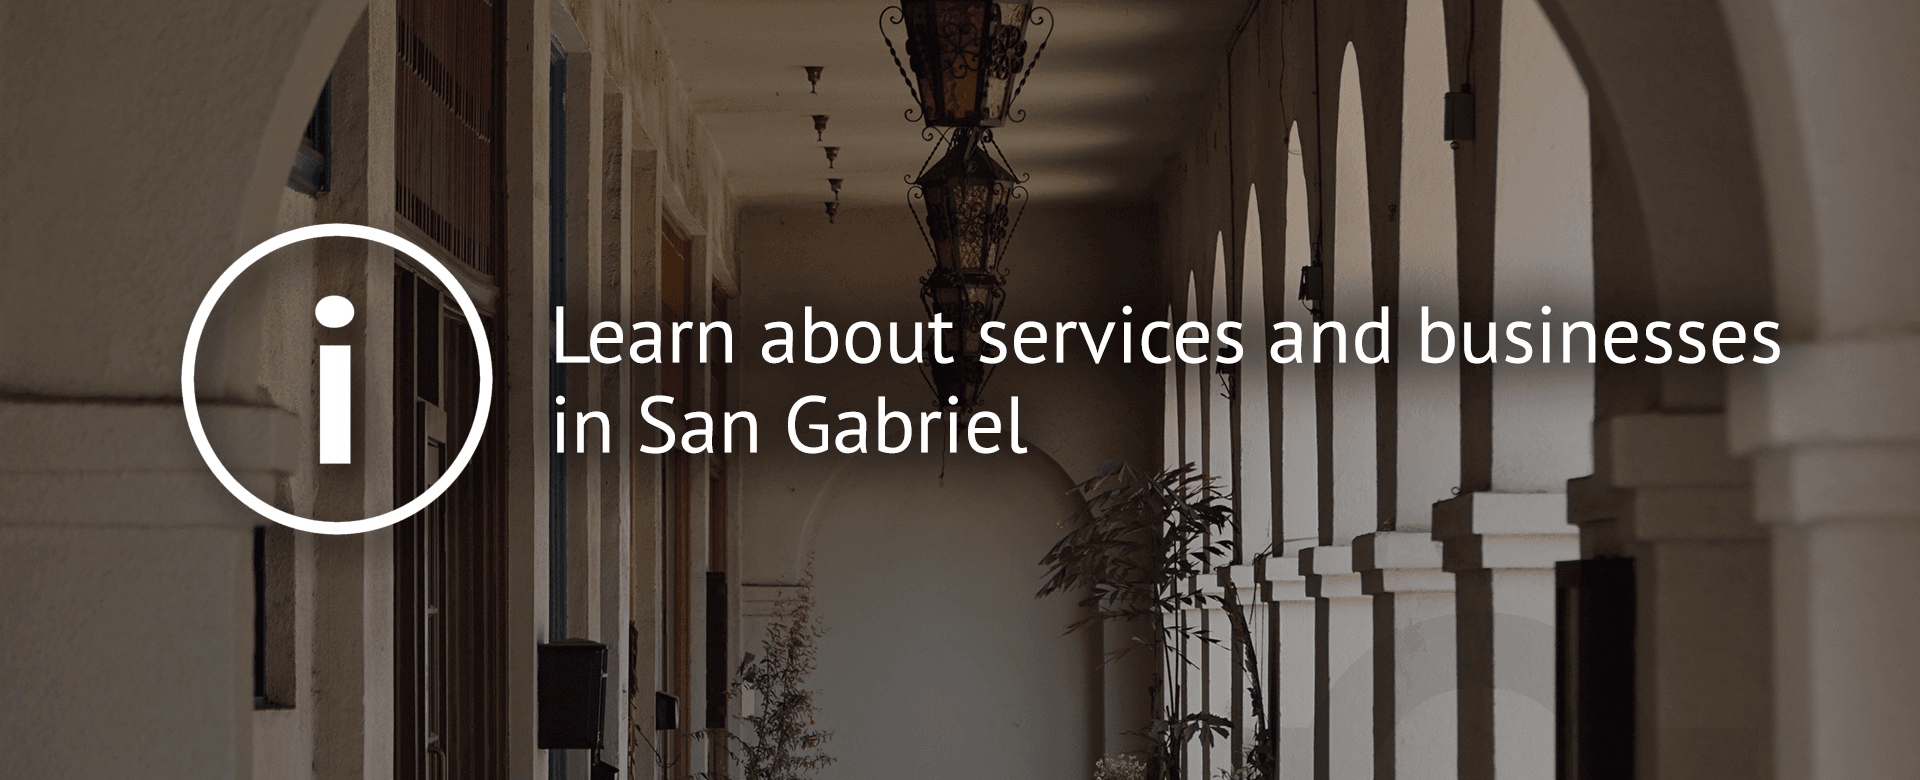 Learn about services and businesses in San Gabriel